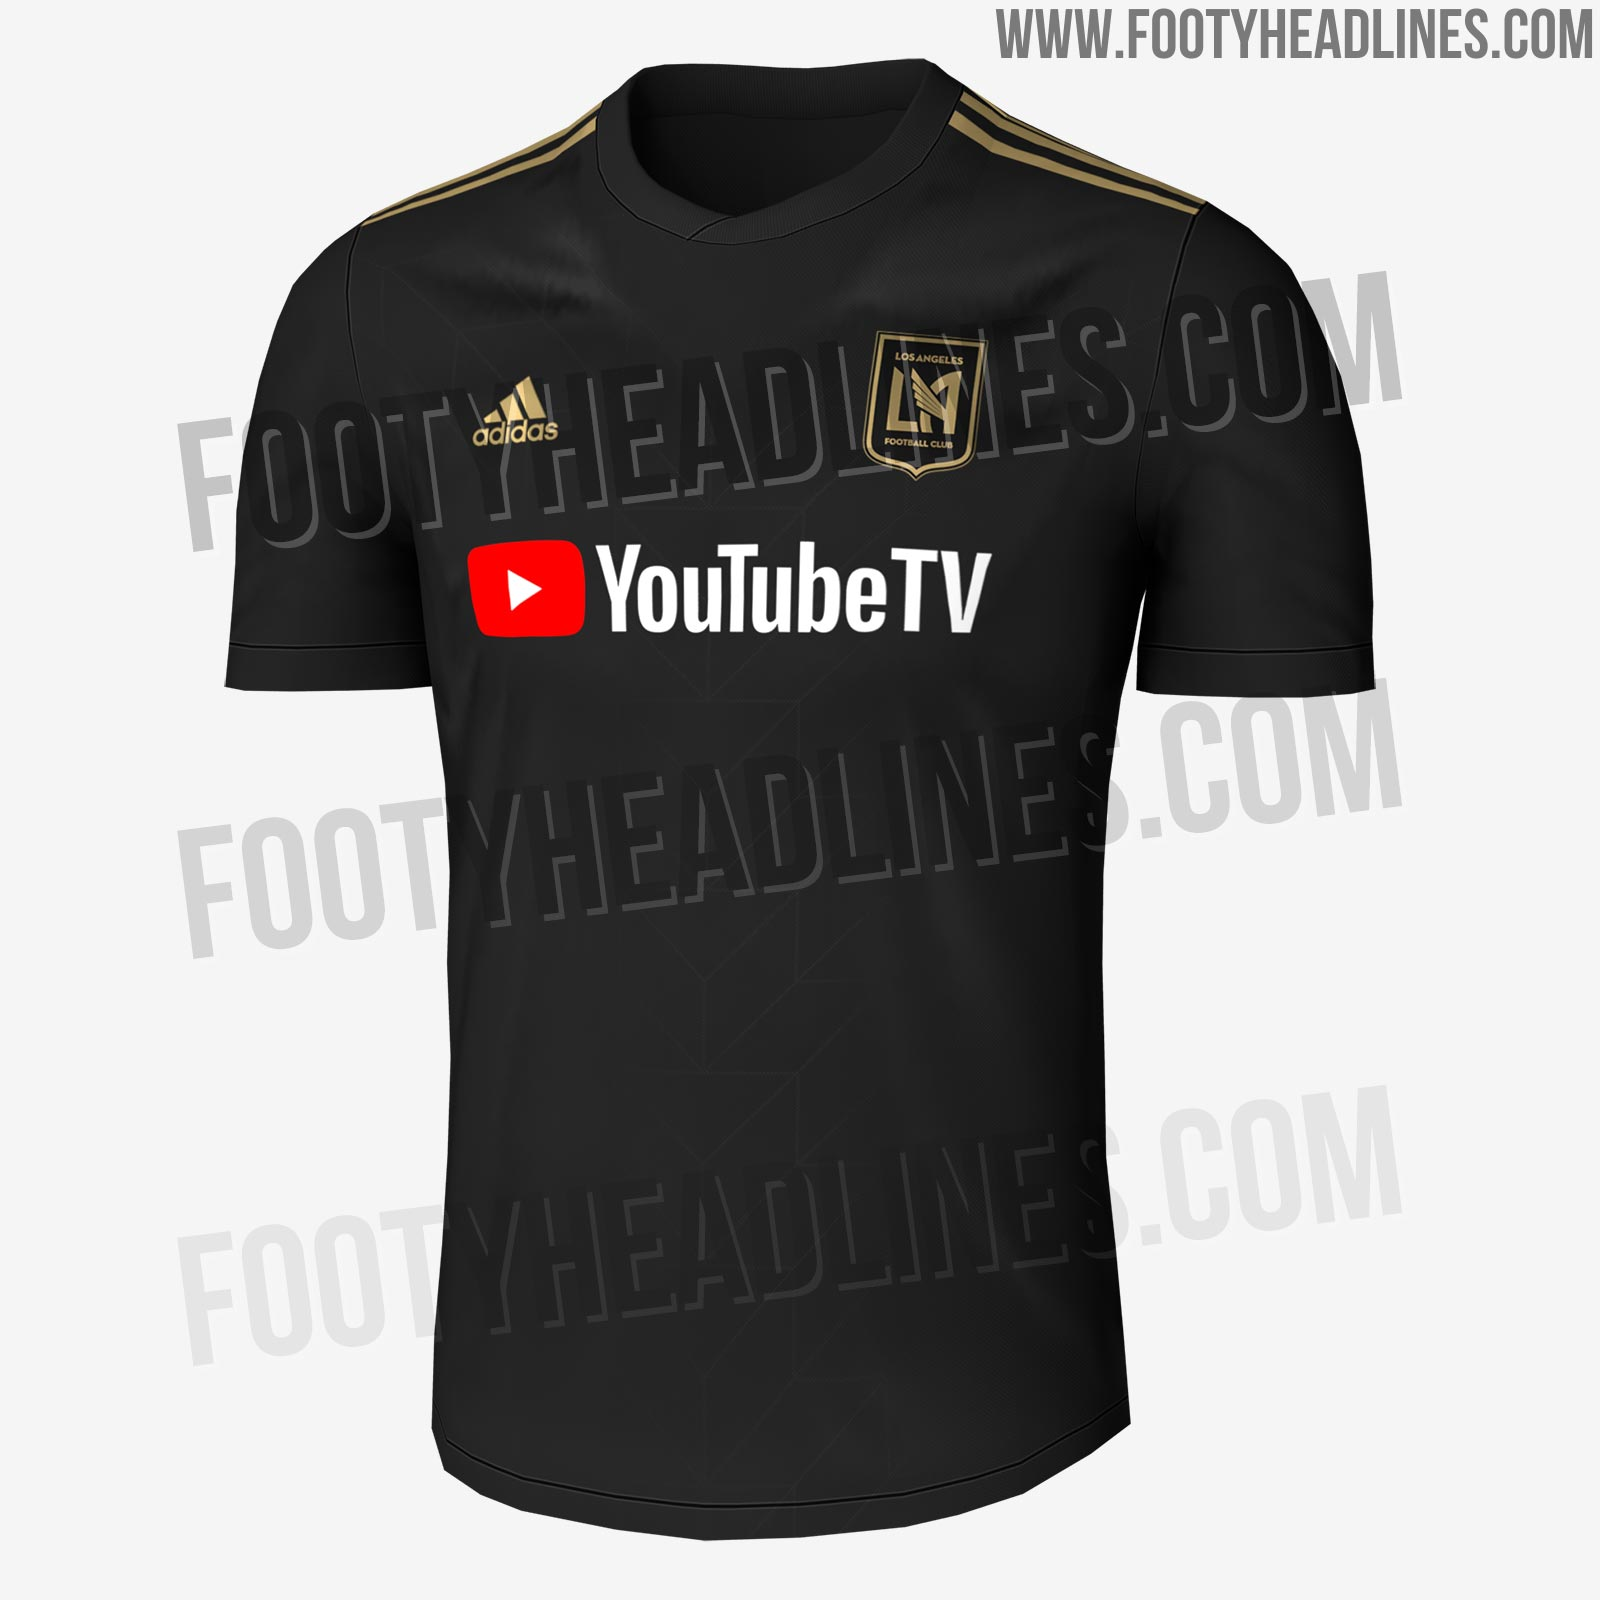 7d5e8ed61 The leaked home kit also has the red Youtube Logo